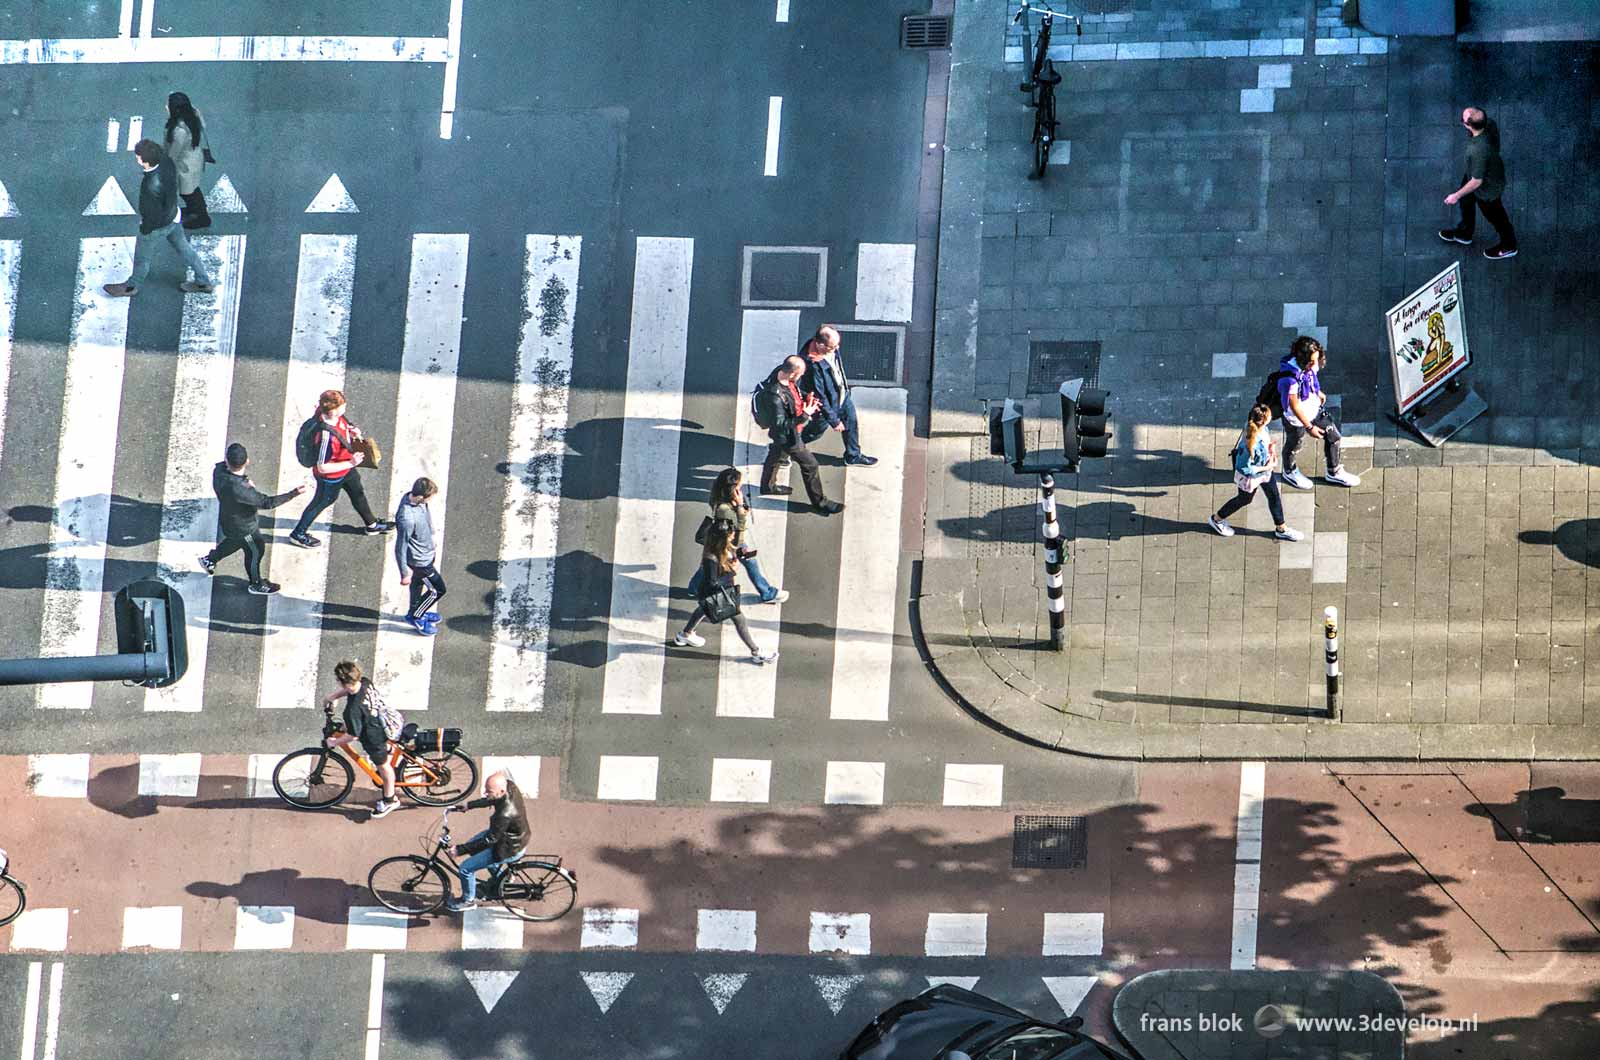 Pedestrians and bicyclists on a street crossing in Rotterdam, seen from above